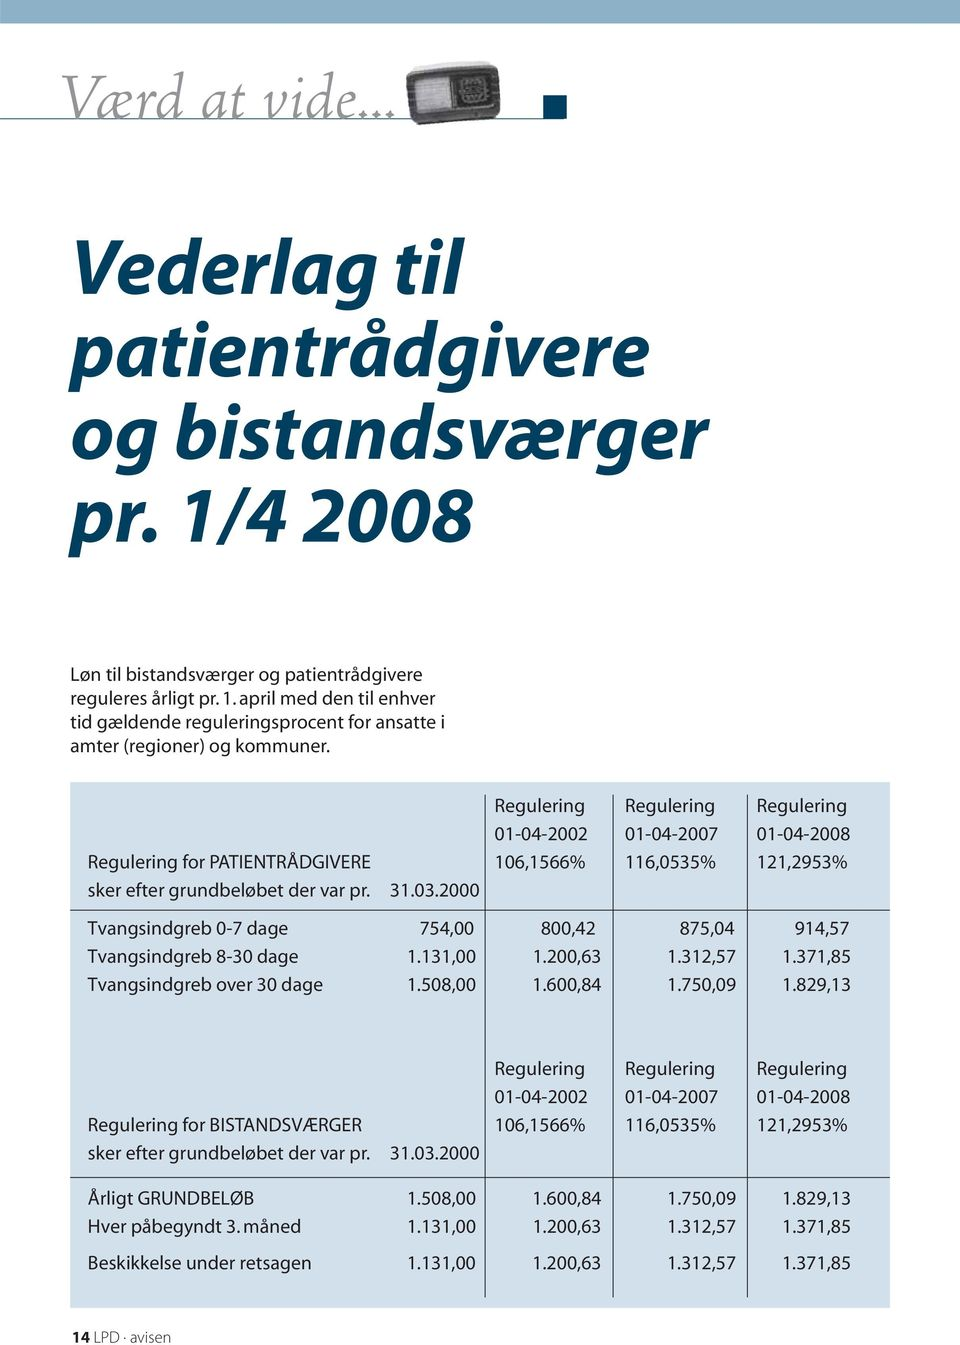 2000 Tvangsindgreb 0-7 dage 754,00 800,42 875,04 914,57 Tvangsindgreb 8-30 dage 1.131,00 1.200,63 1.312,57 1.371,85 Tvangsindgreb over 30 dage 1.508,00 1.600,84 1.750,09 1.